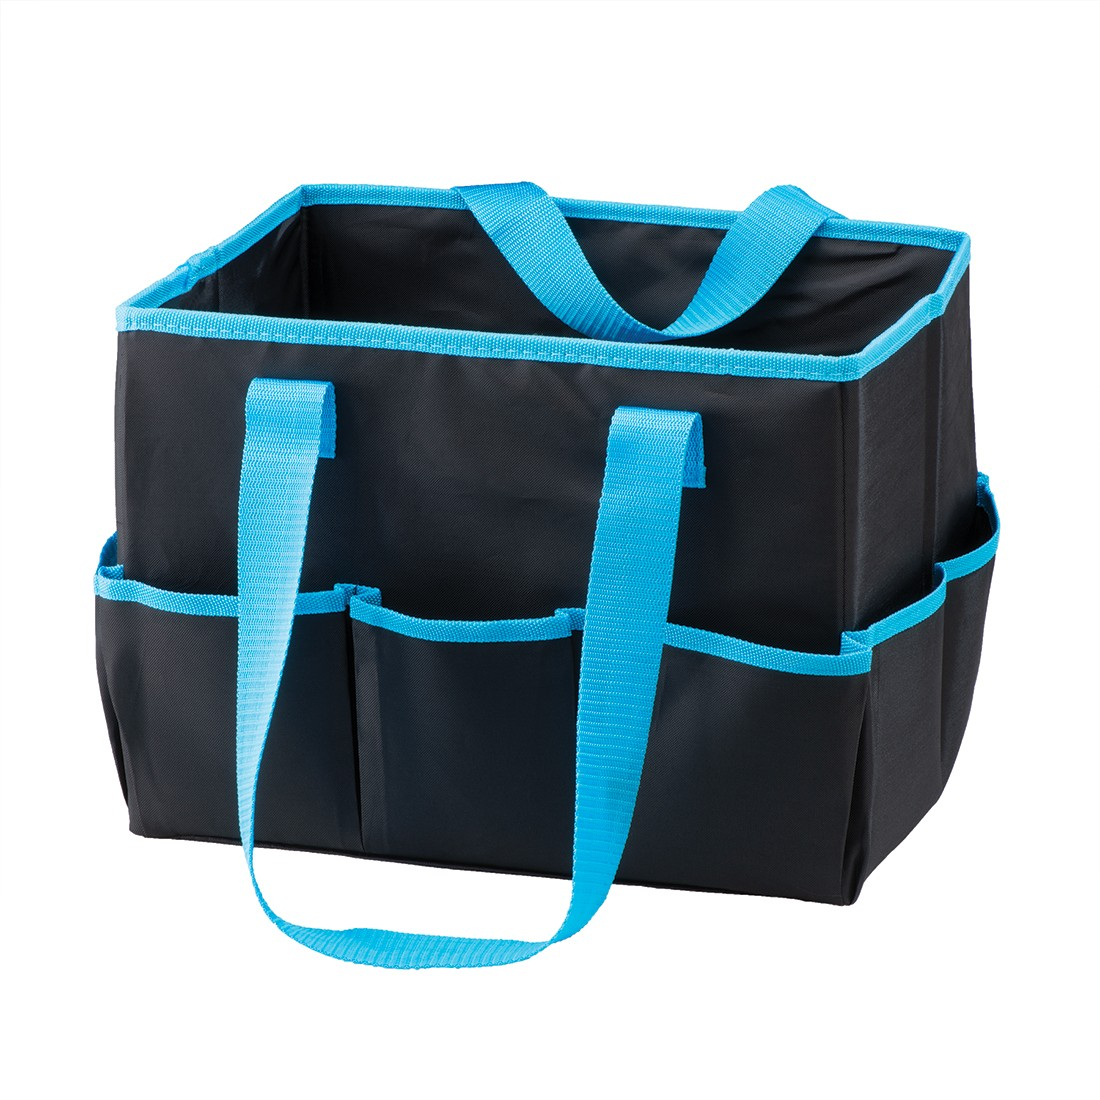 Nylon Carry-All Storage Tote  [image]